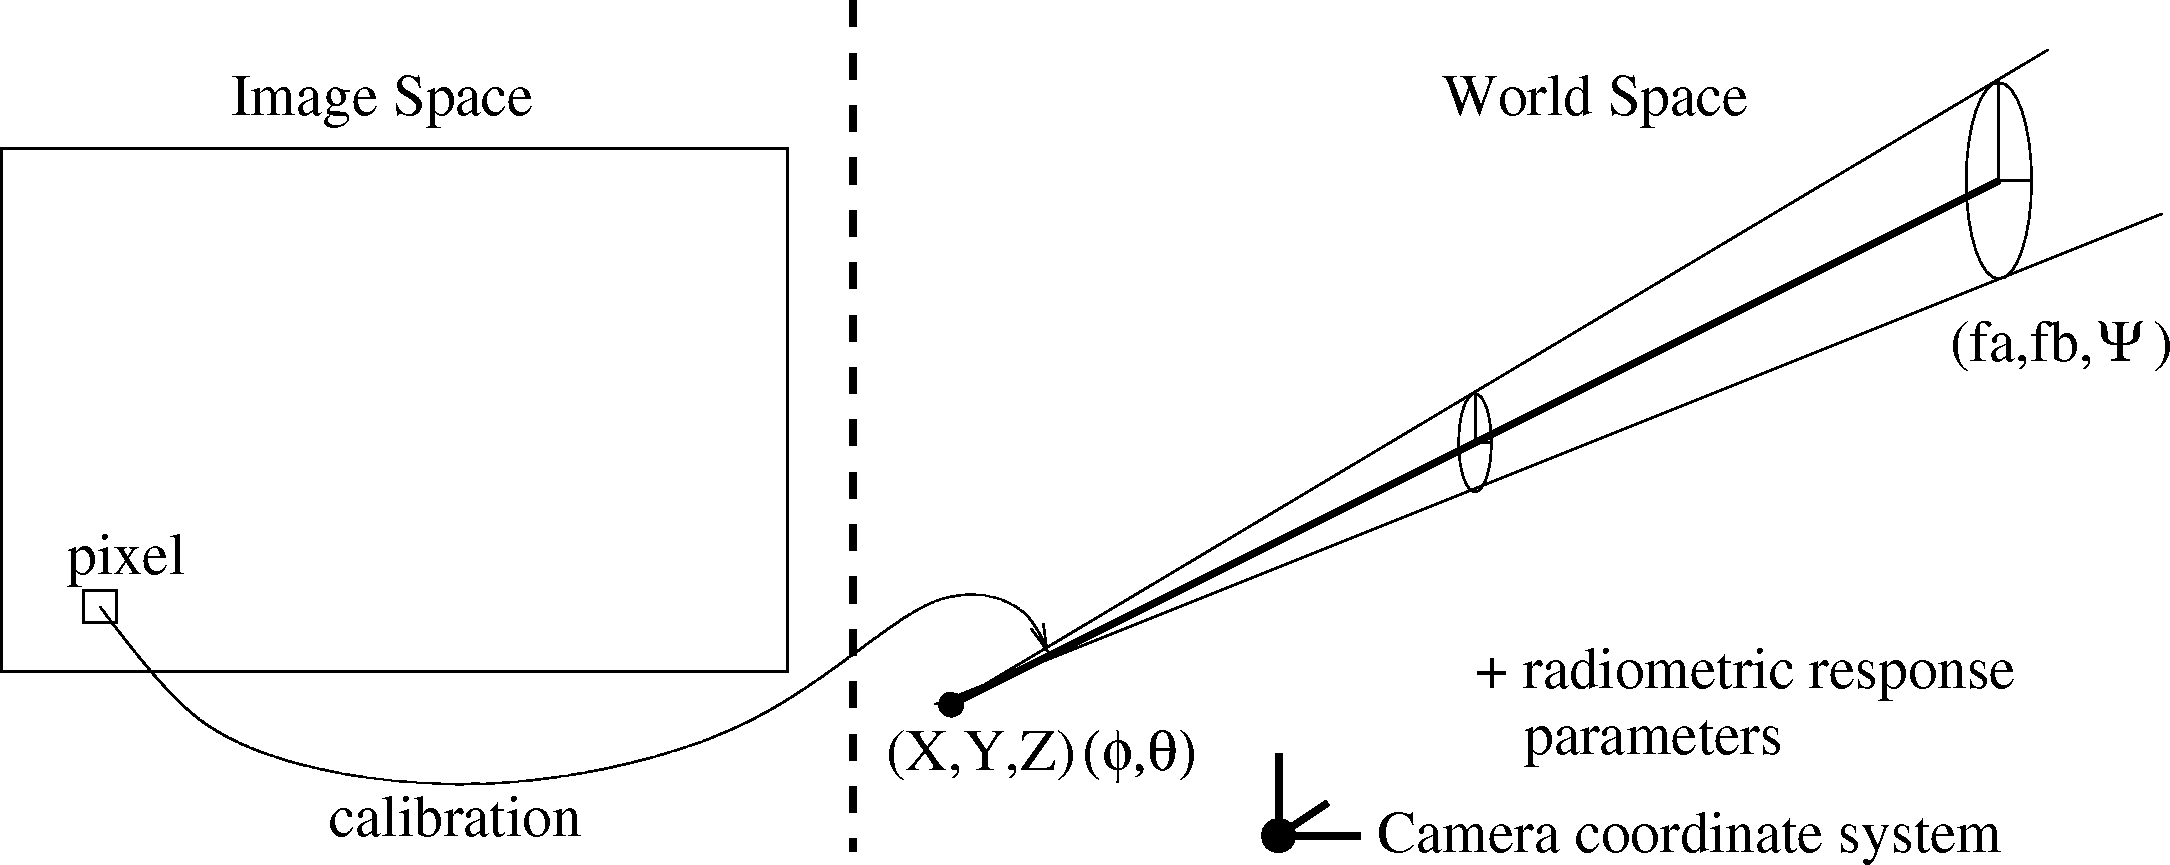 Figure 2. (Top) The generalized imaging model [13] expresses how each pixel samples the light-field.